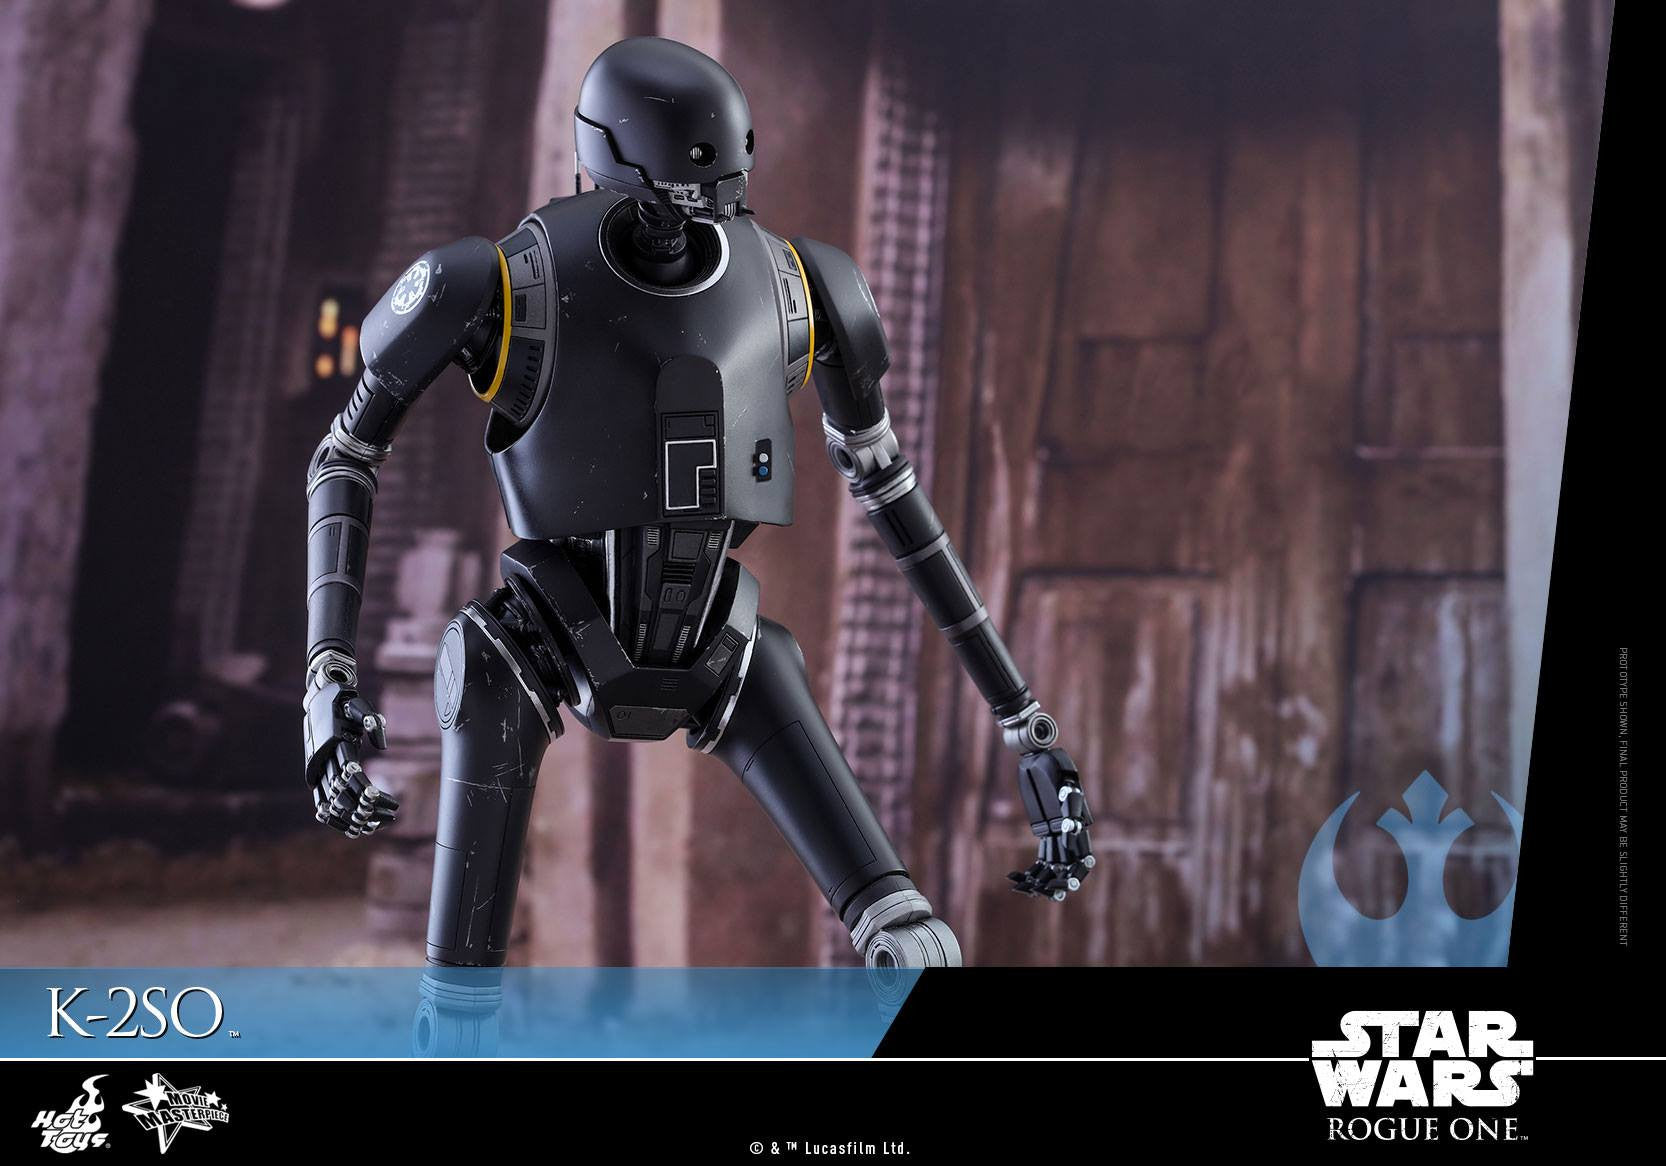 Hot Toys - MMS406 - Rogue One: A Star Wars Story - K-2SO - Marvelous Toys - 13